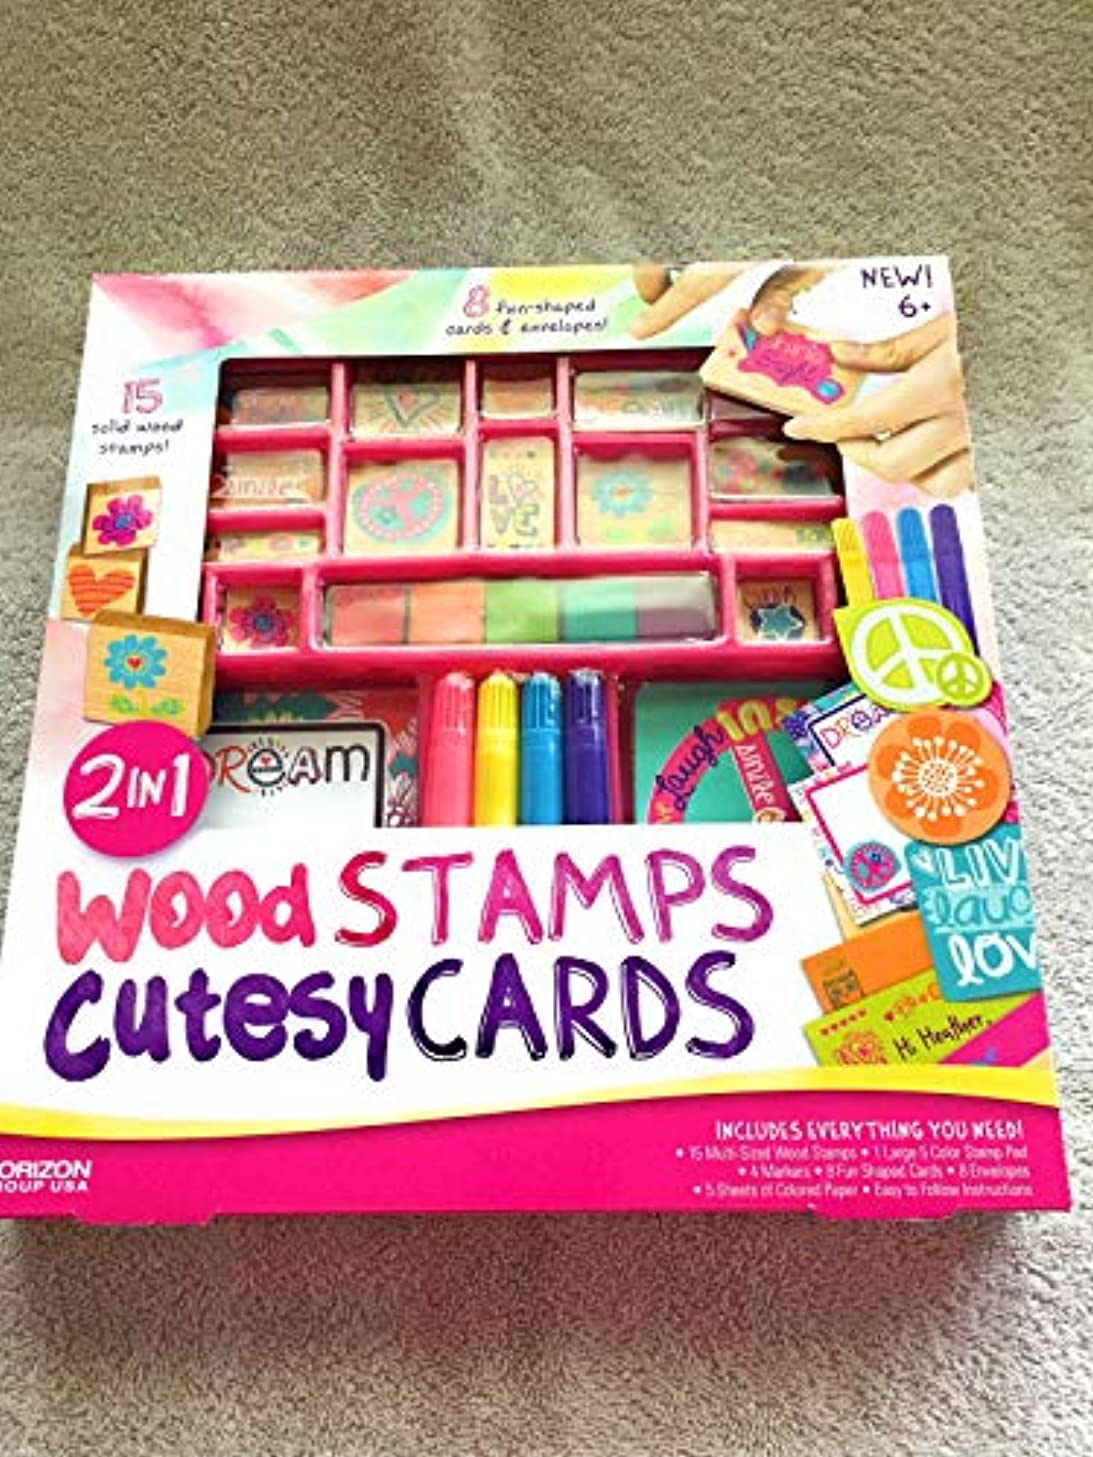 2 in 1 Wood Stamps Cutesy Cards